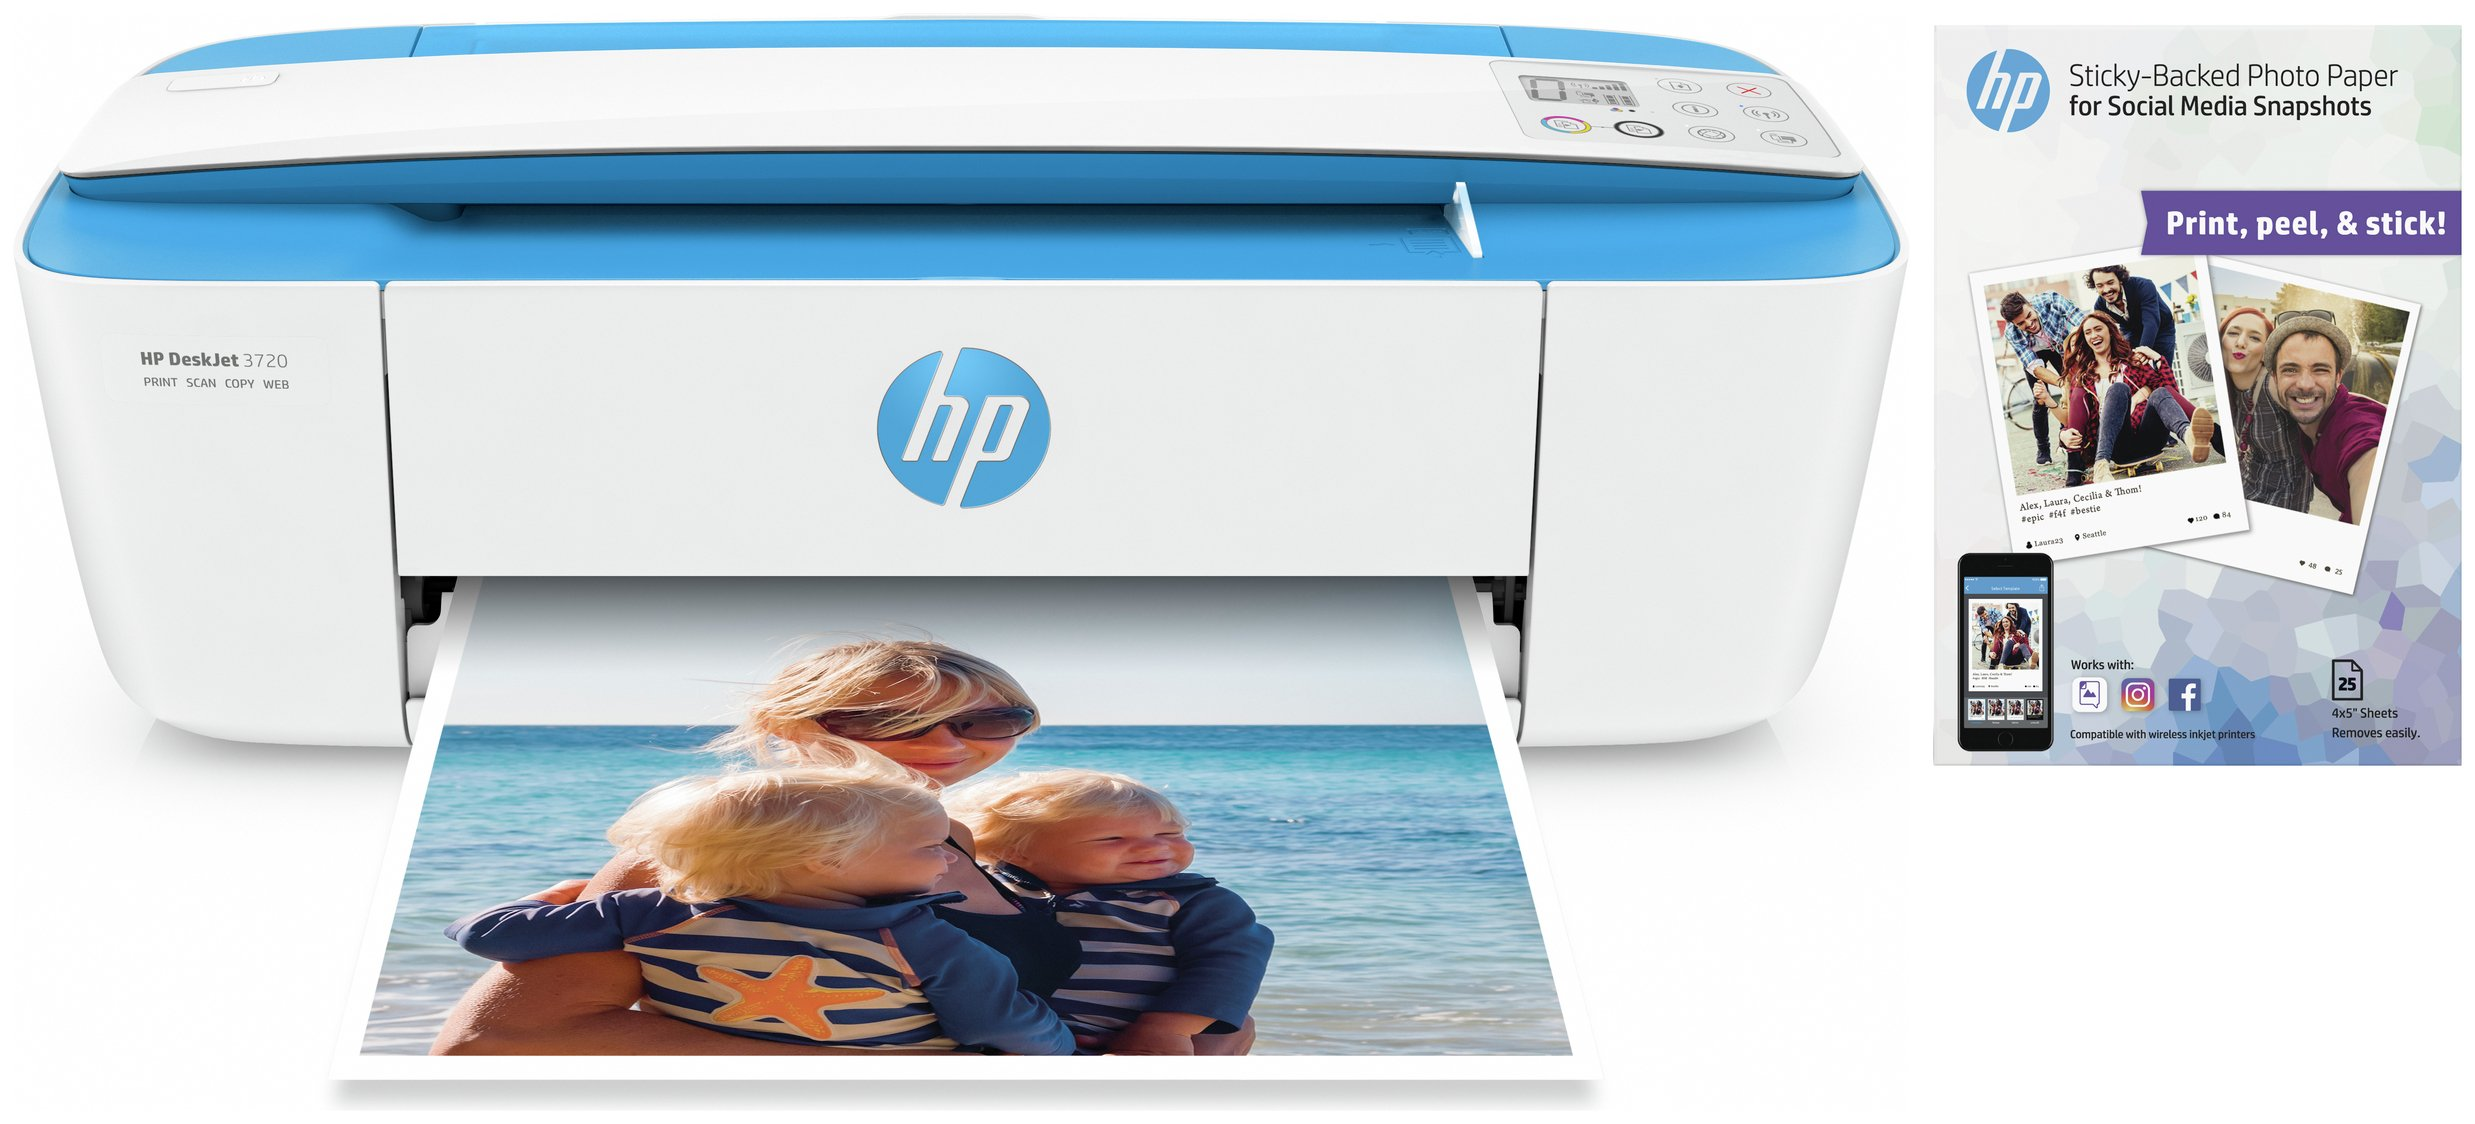 HP Deskjet 3720 Wireless All-in-One Printer Bundle